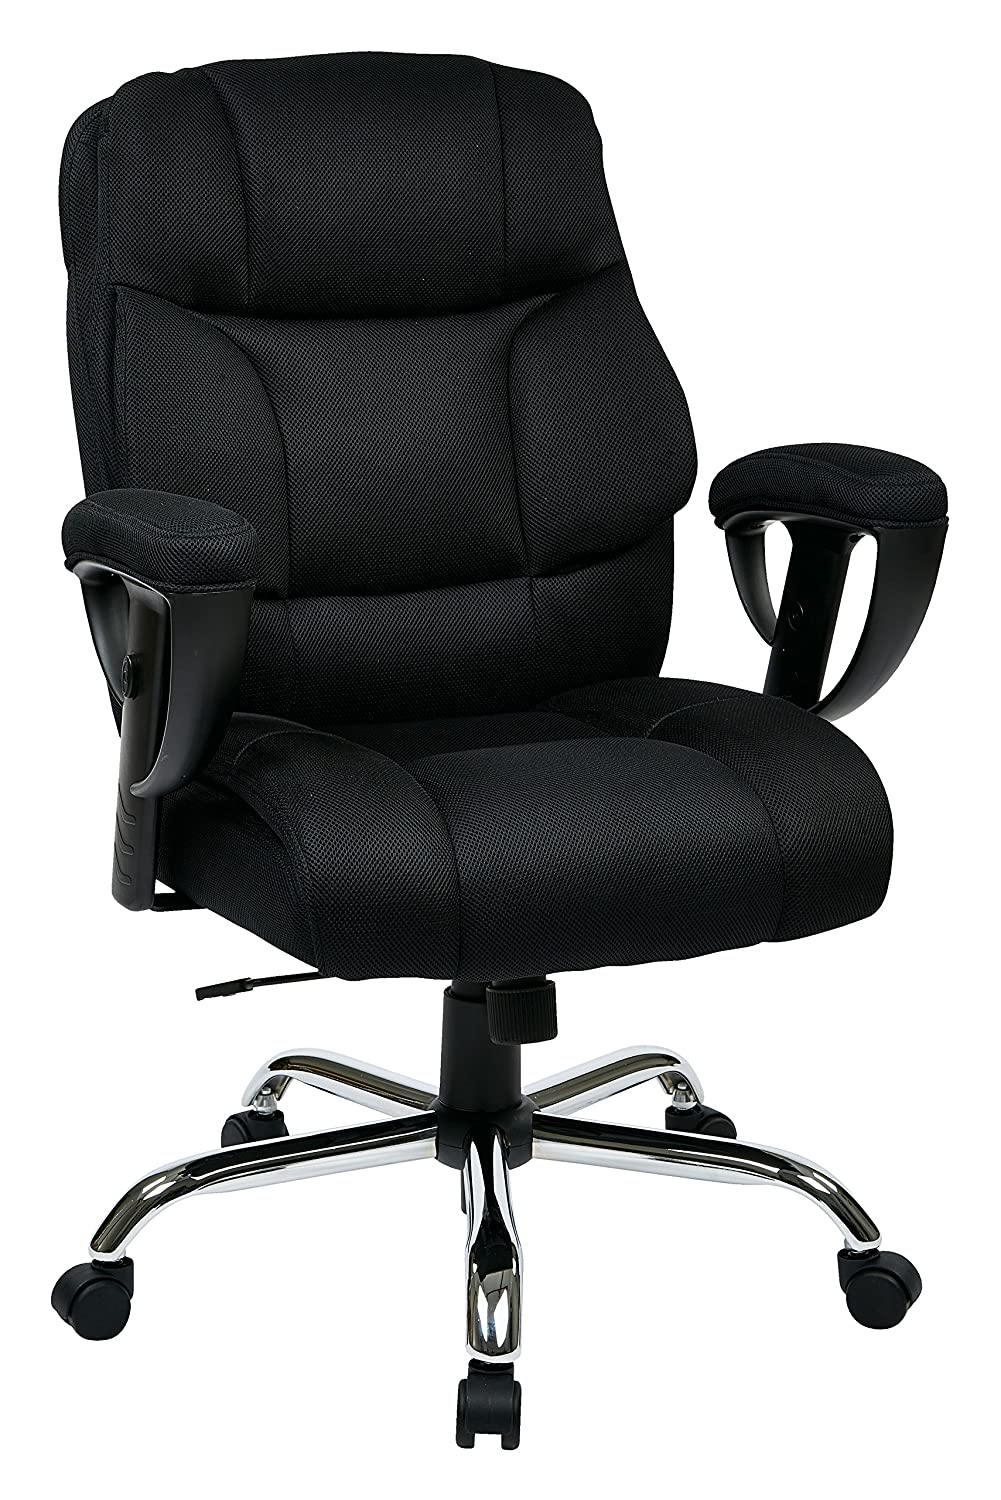 Office Star Executive Big Man's Chair - Office Chair 350lb Weight Capacity